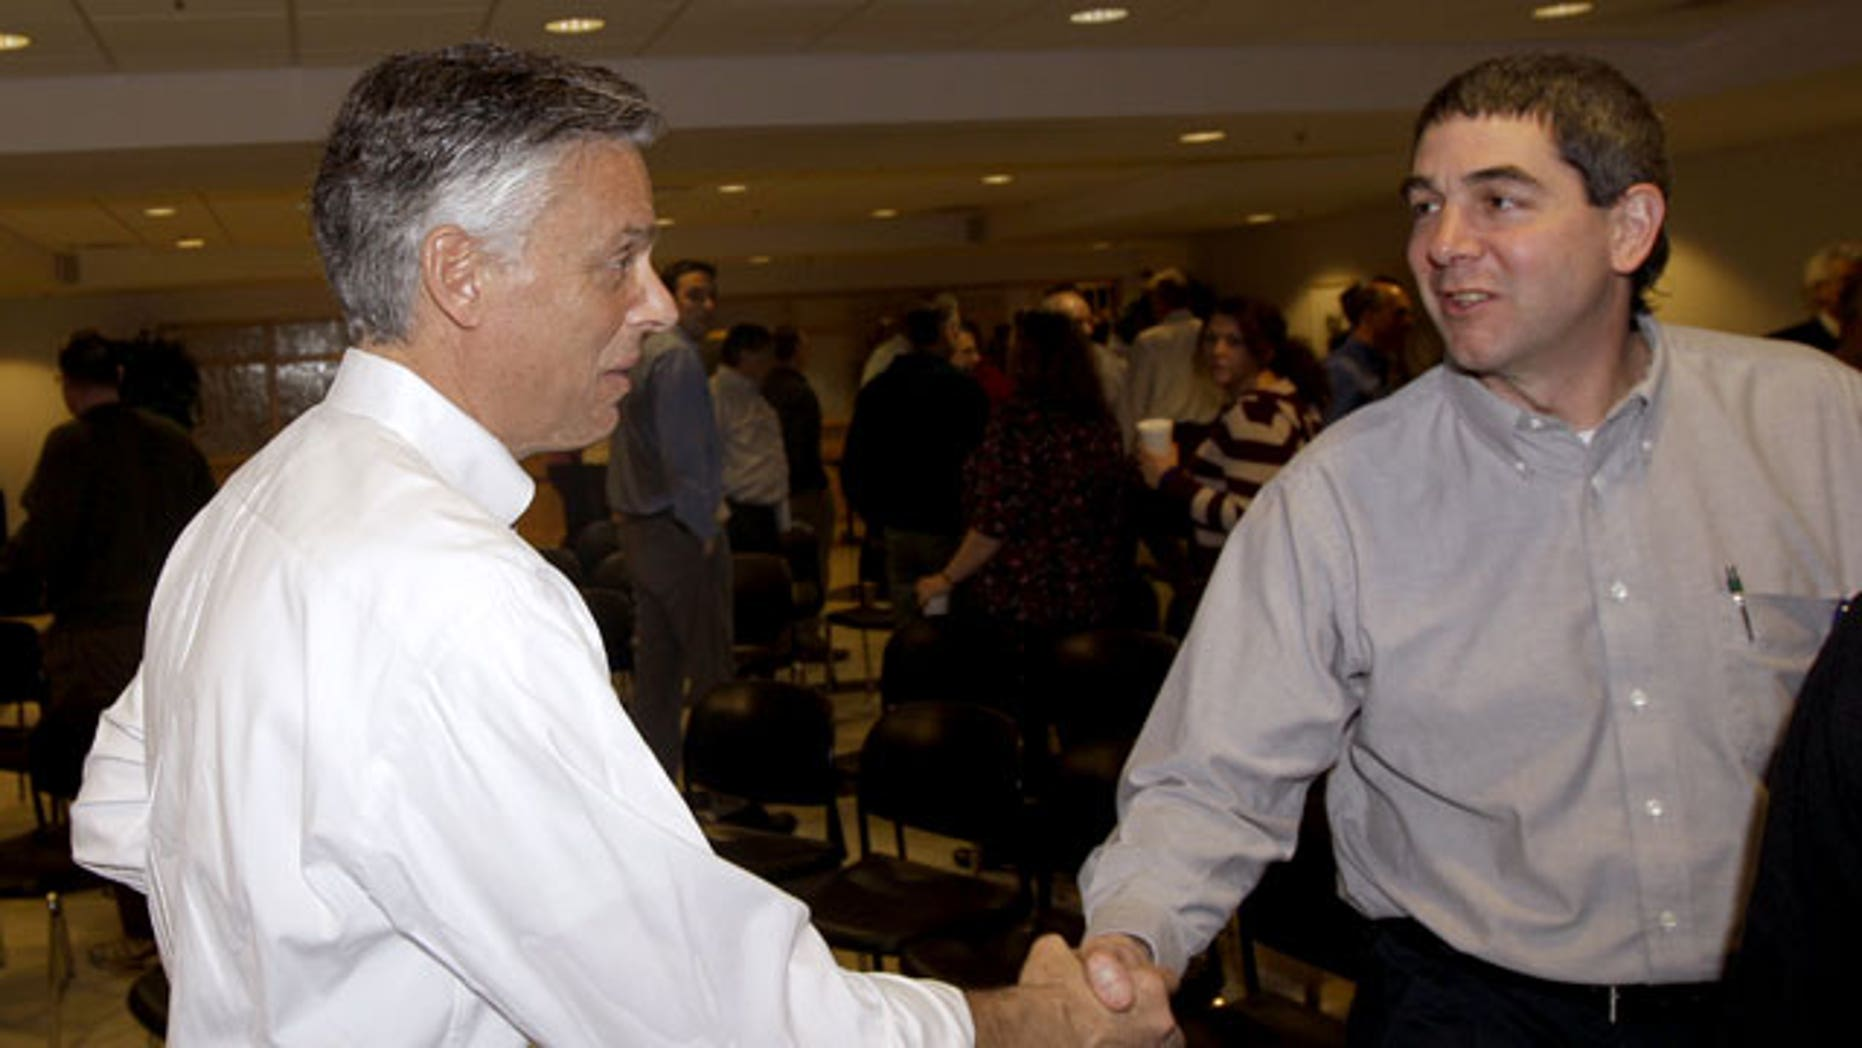 January 5, 2012: Republican presidential candidate, former Utah Gov. Jon Huntsman shakes the hand of an employee after a town hall style meeting at Goss International in Durham, N.H.